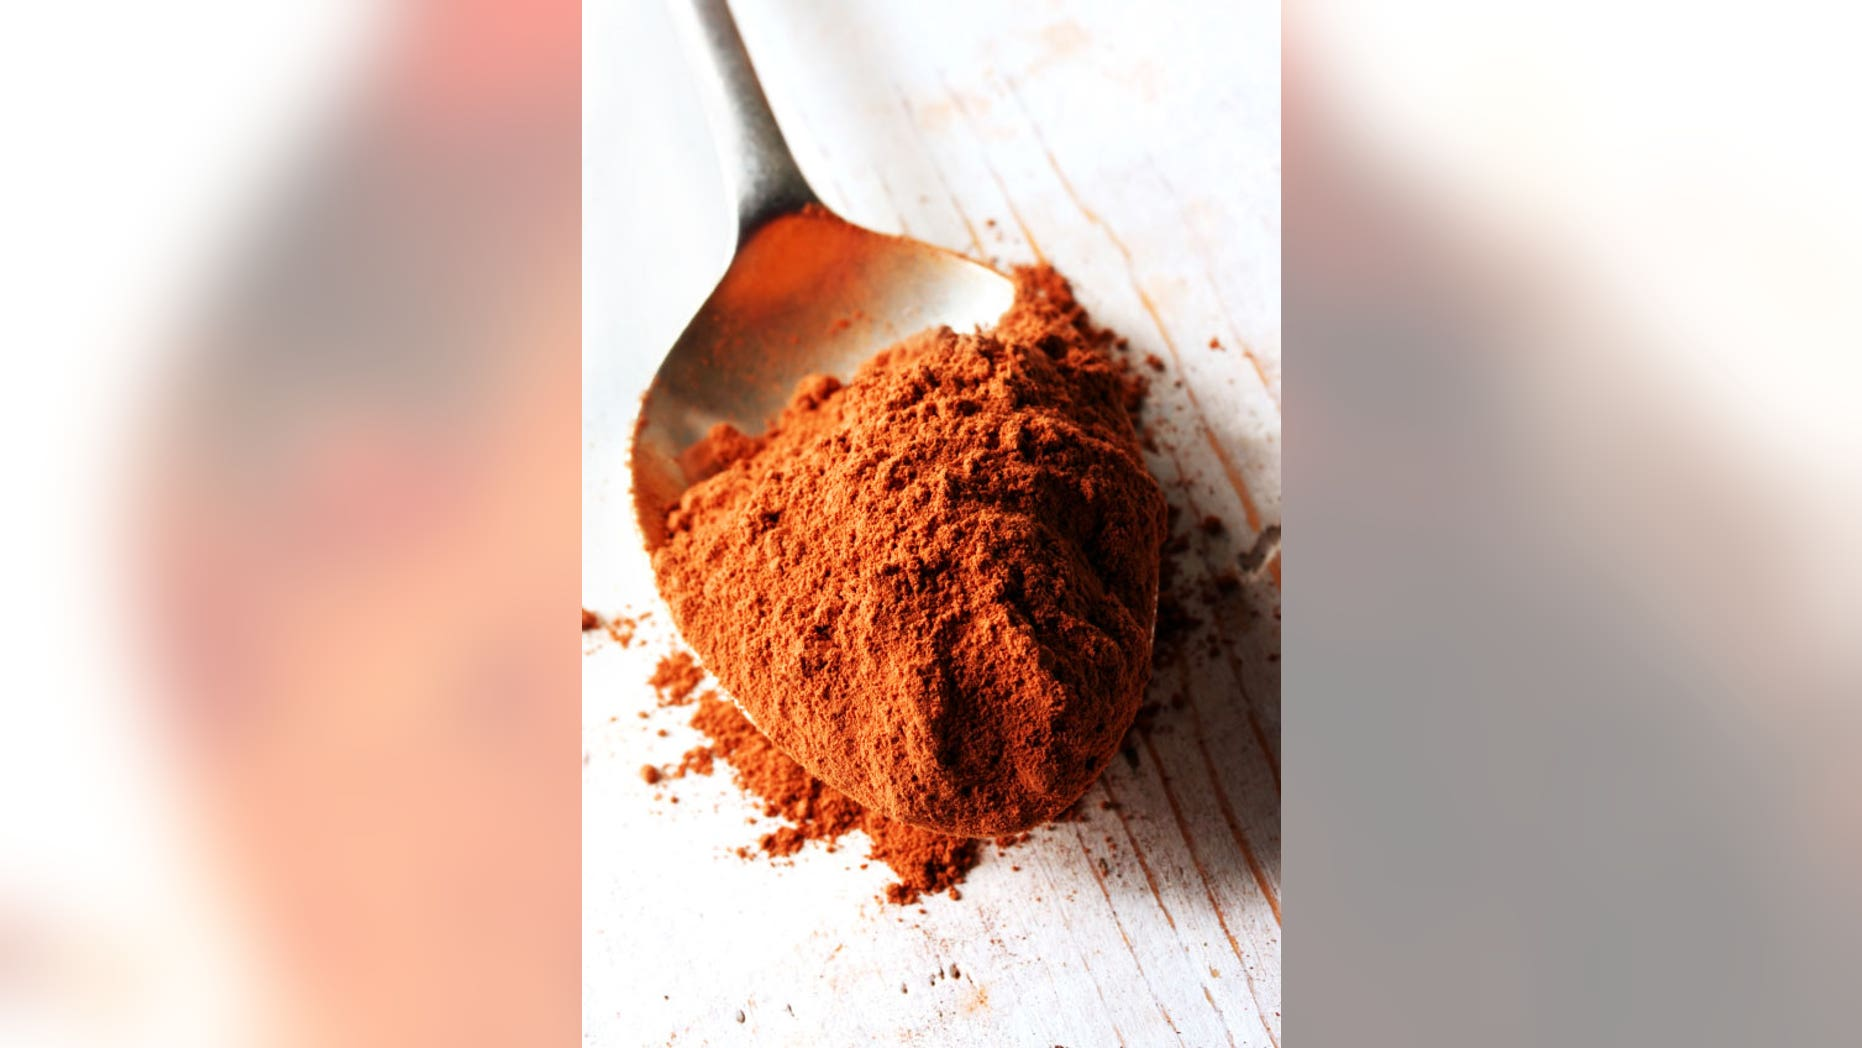 Healthy benefits of allspice and nutmeg | Fox News